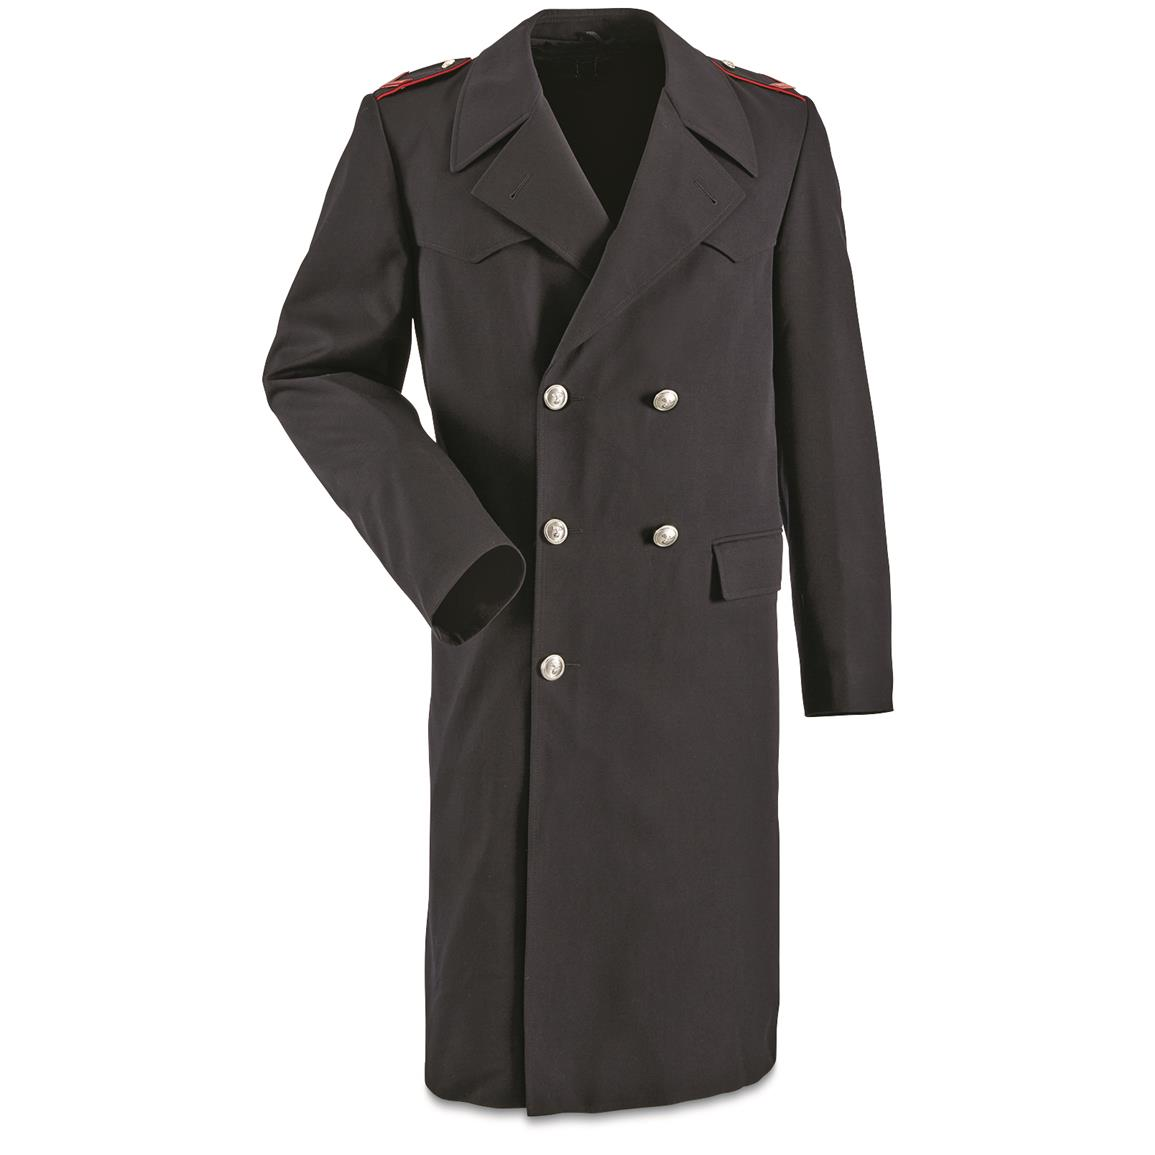 Italian Police Surplus Wool Trench Coat with Liner, New